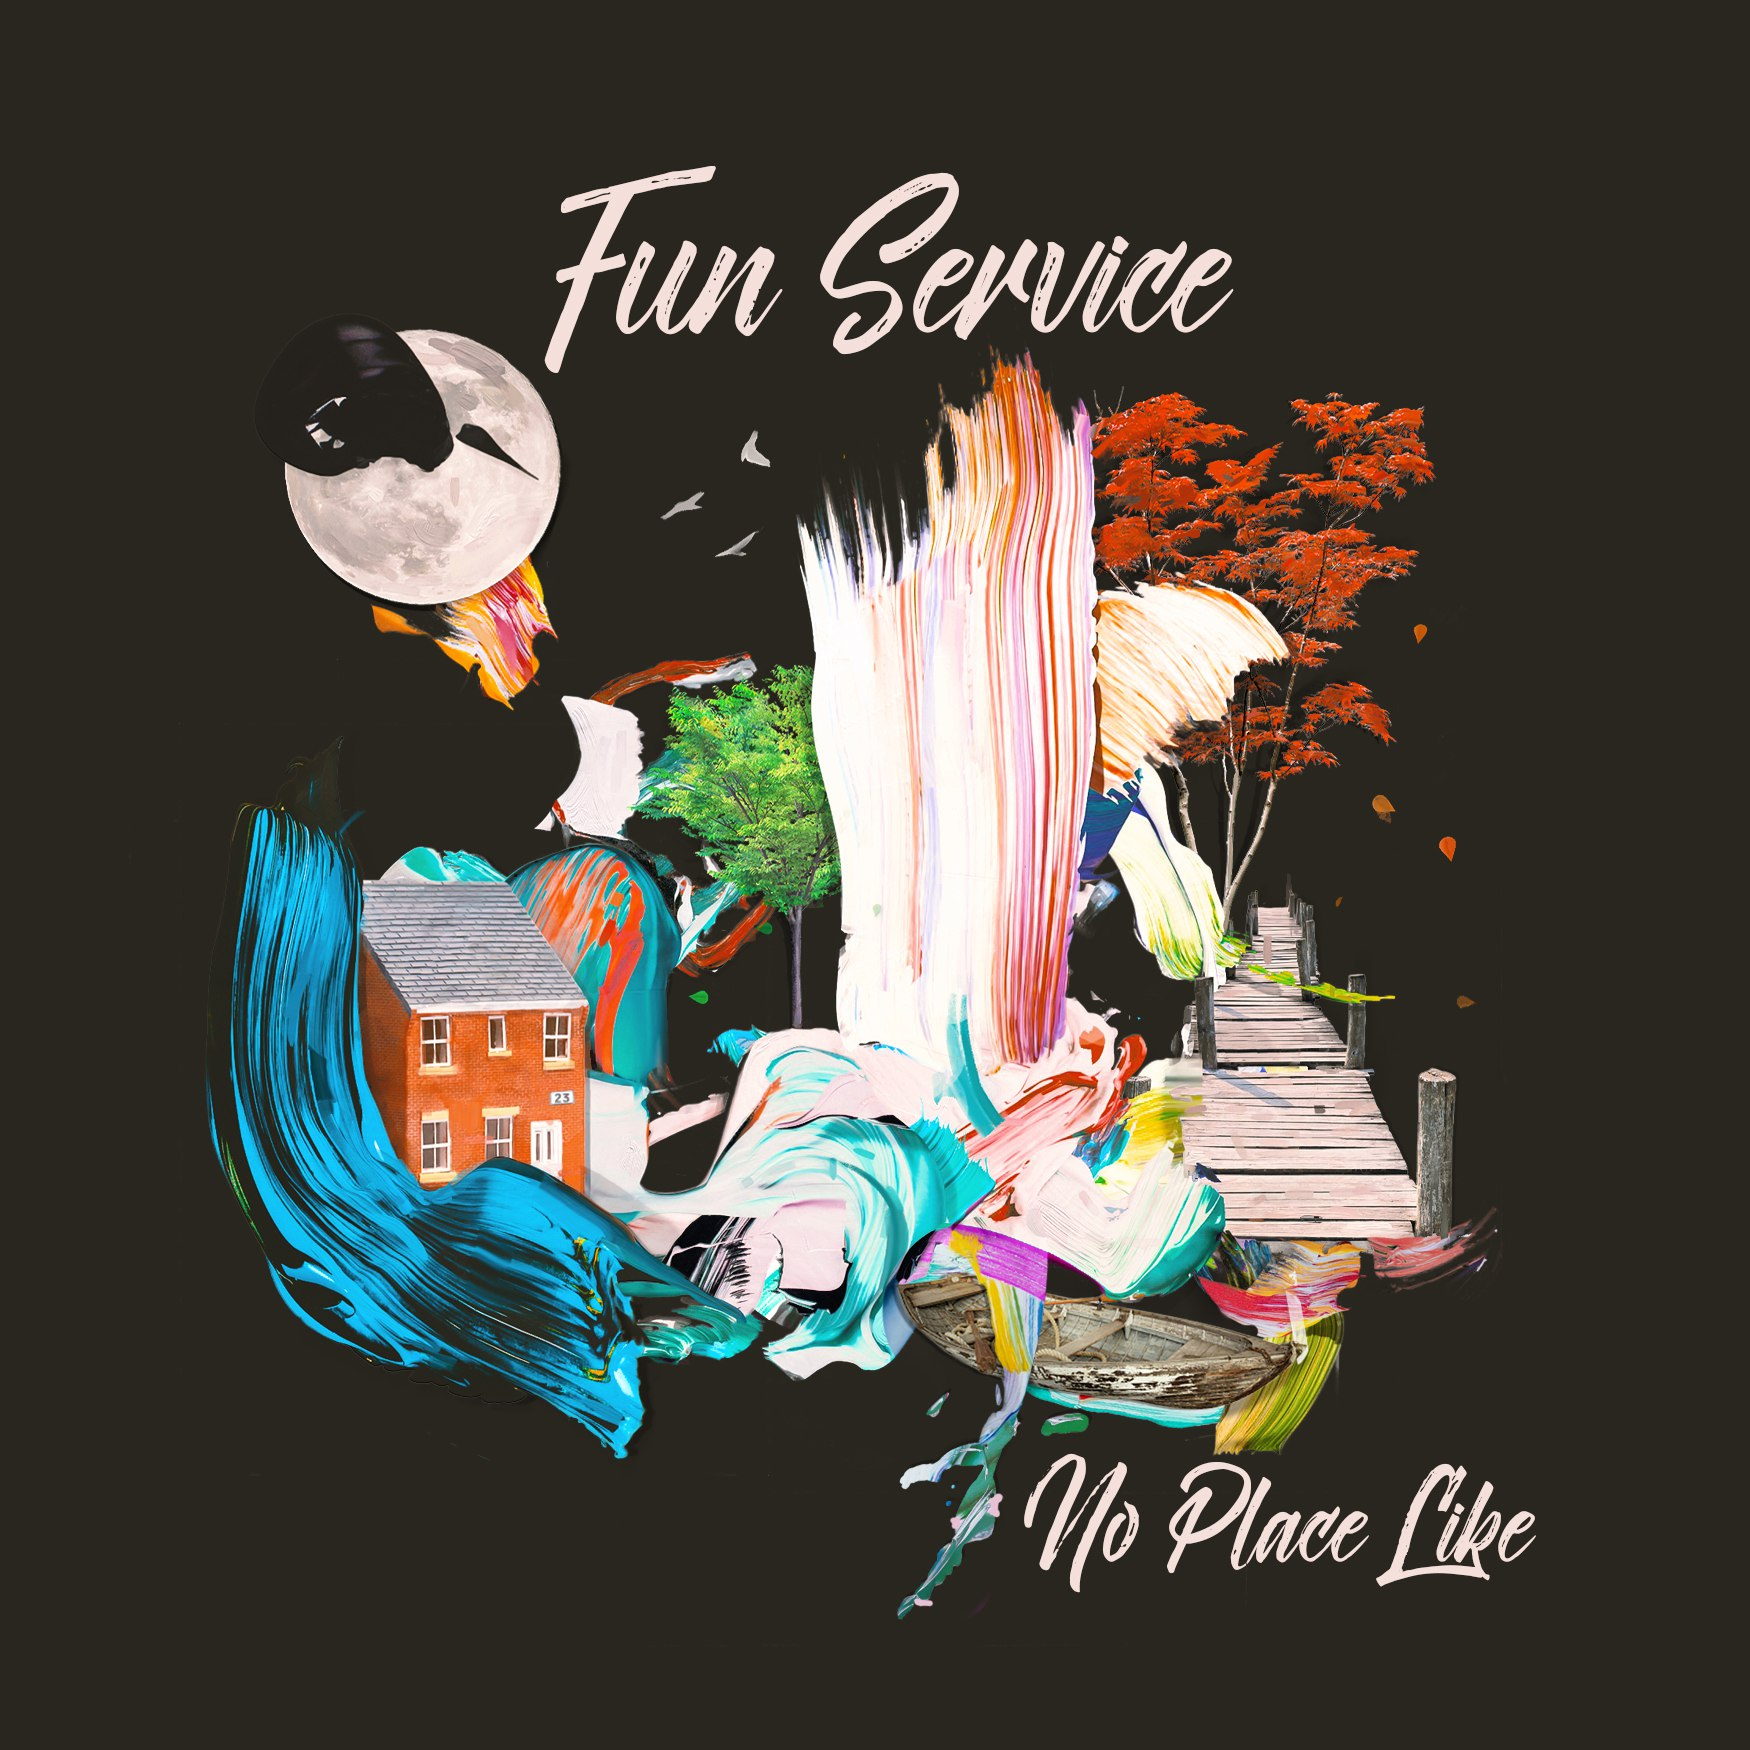 Fun Service - No Place Like (2017)